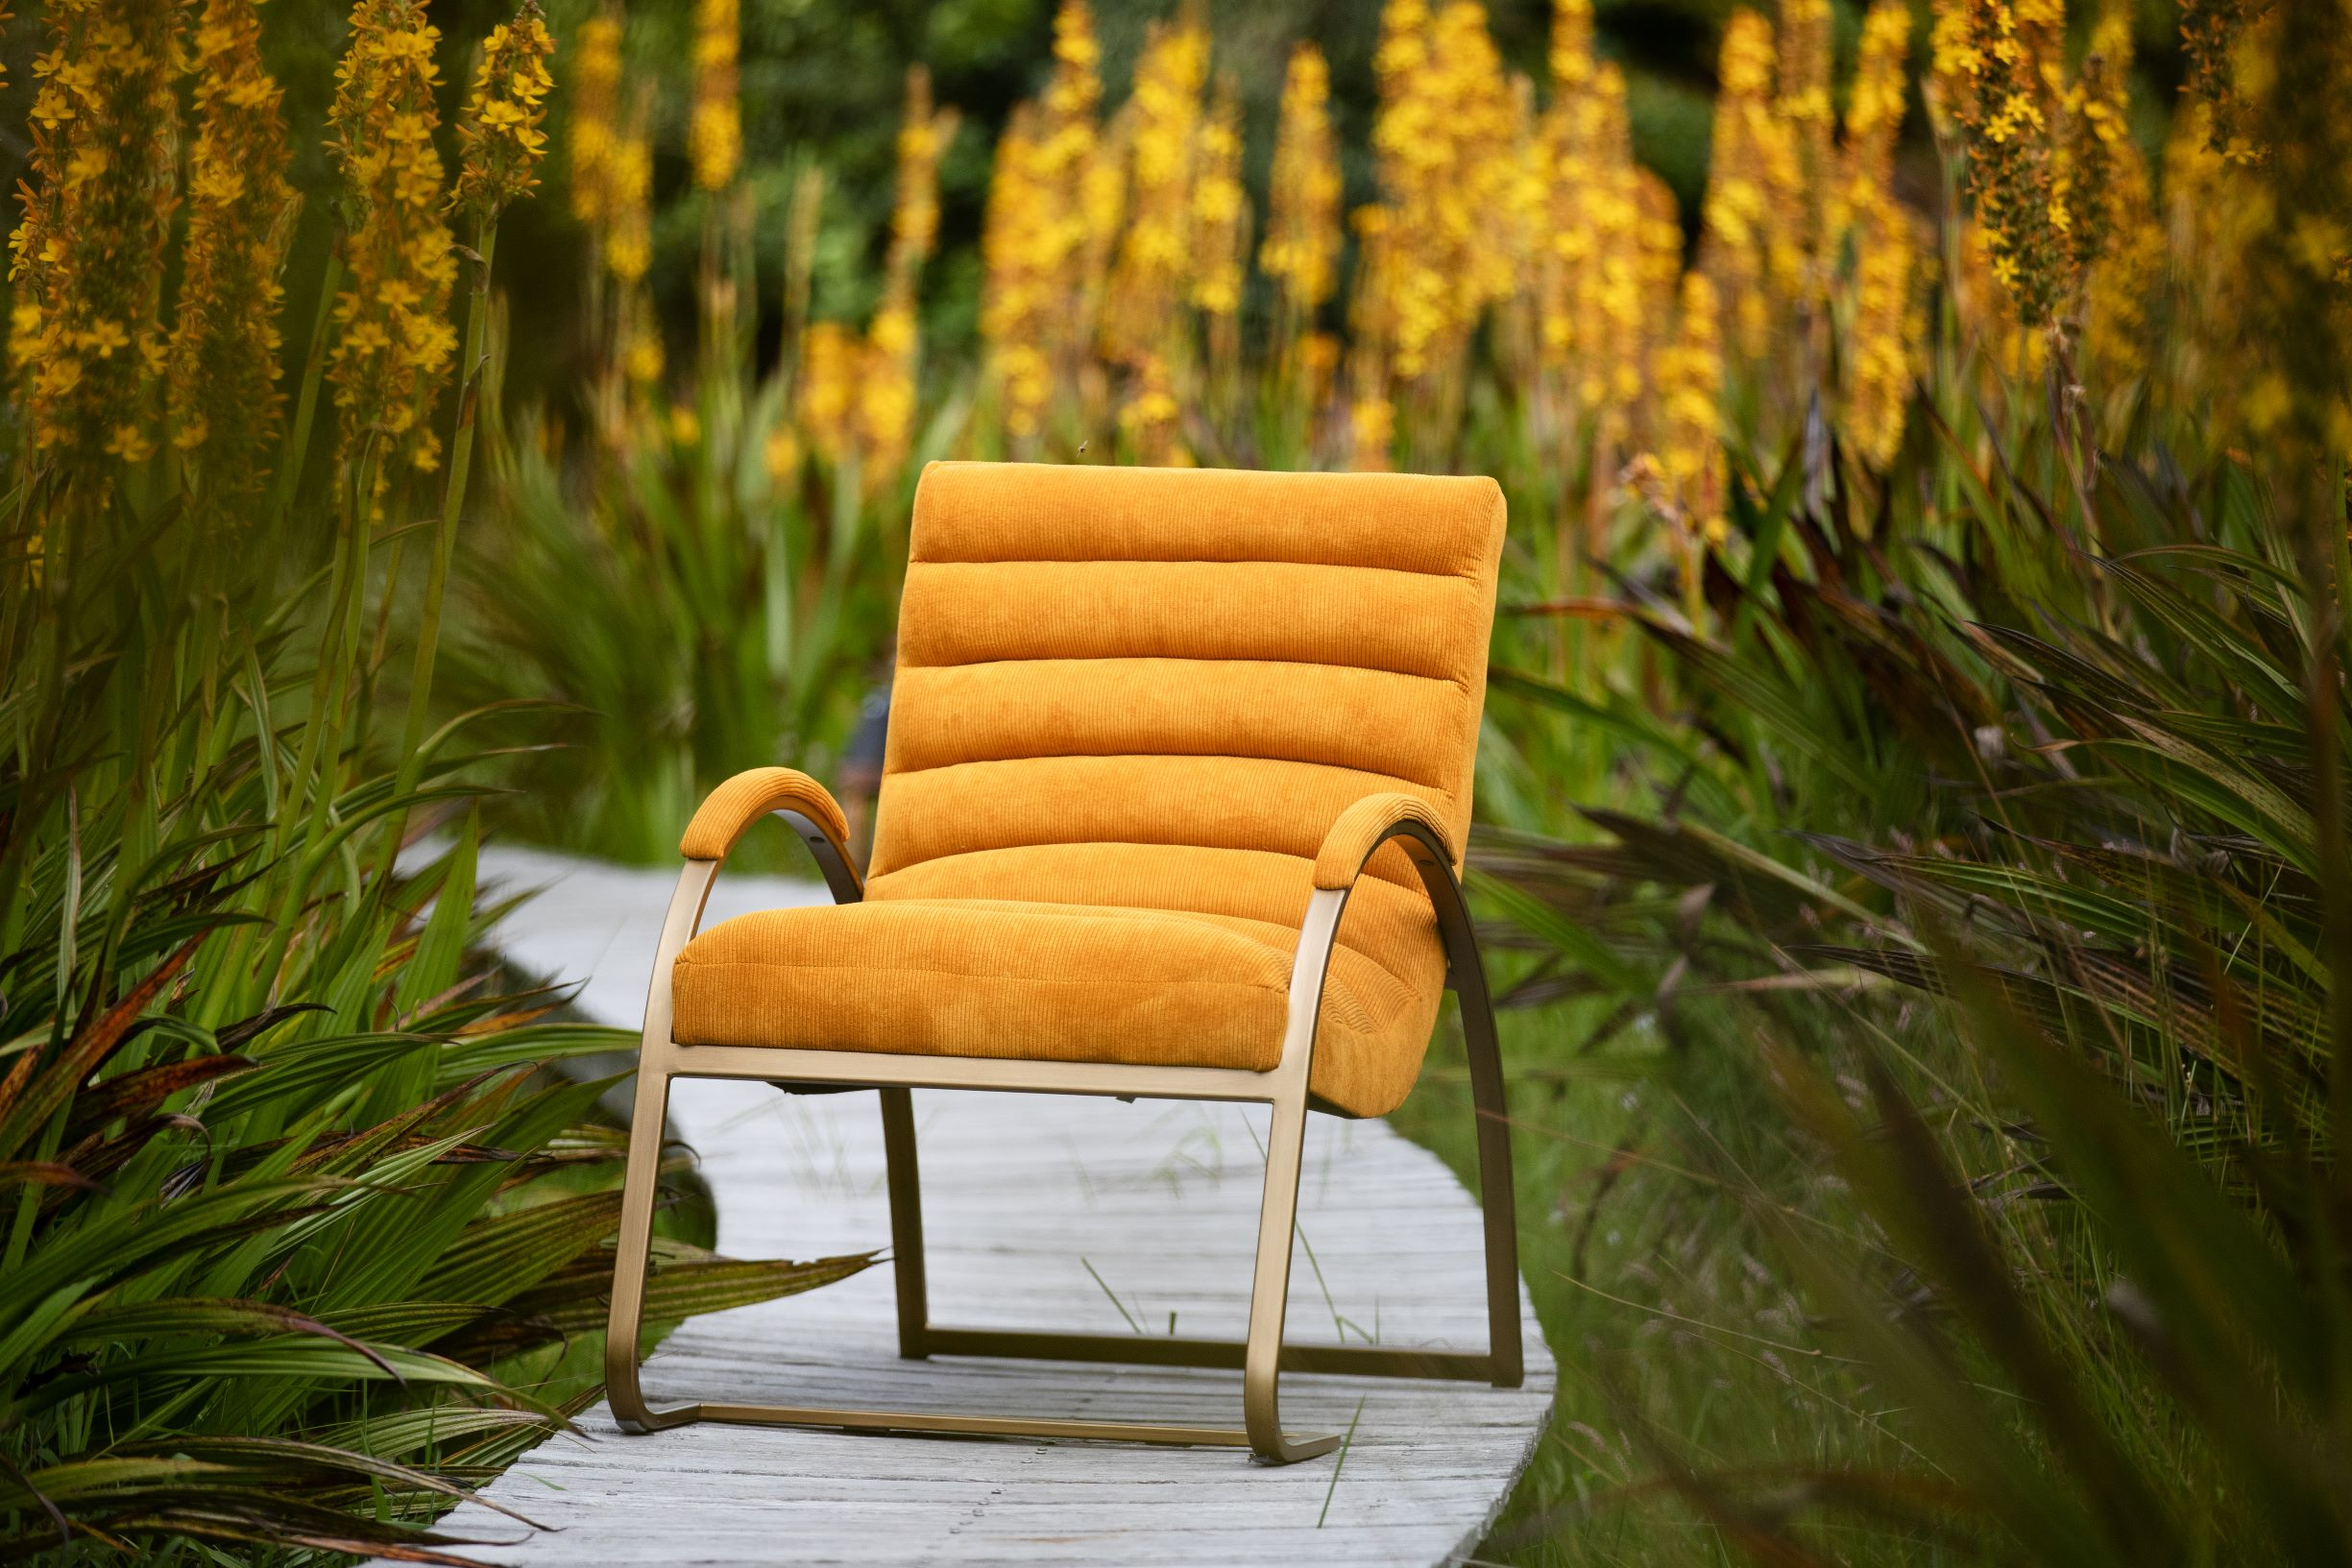 Gold metal framed chair upholstered in orange cord fabric.